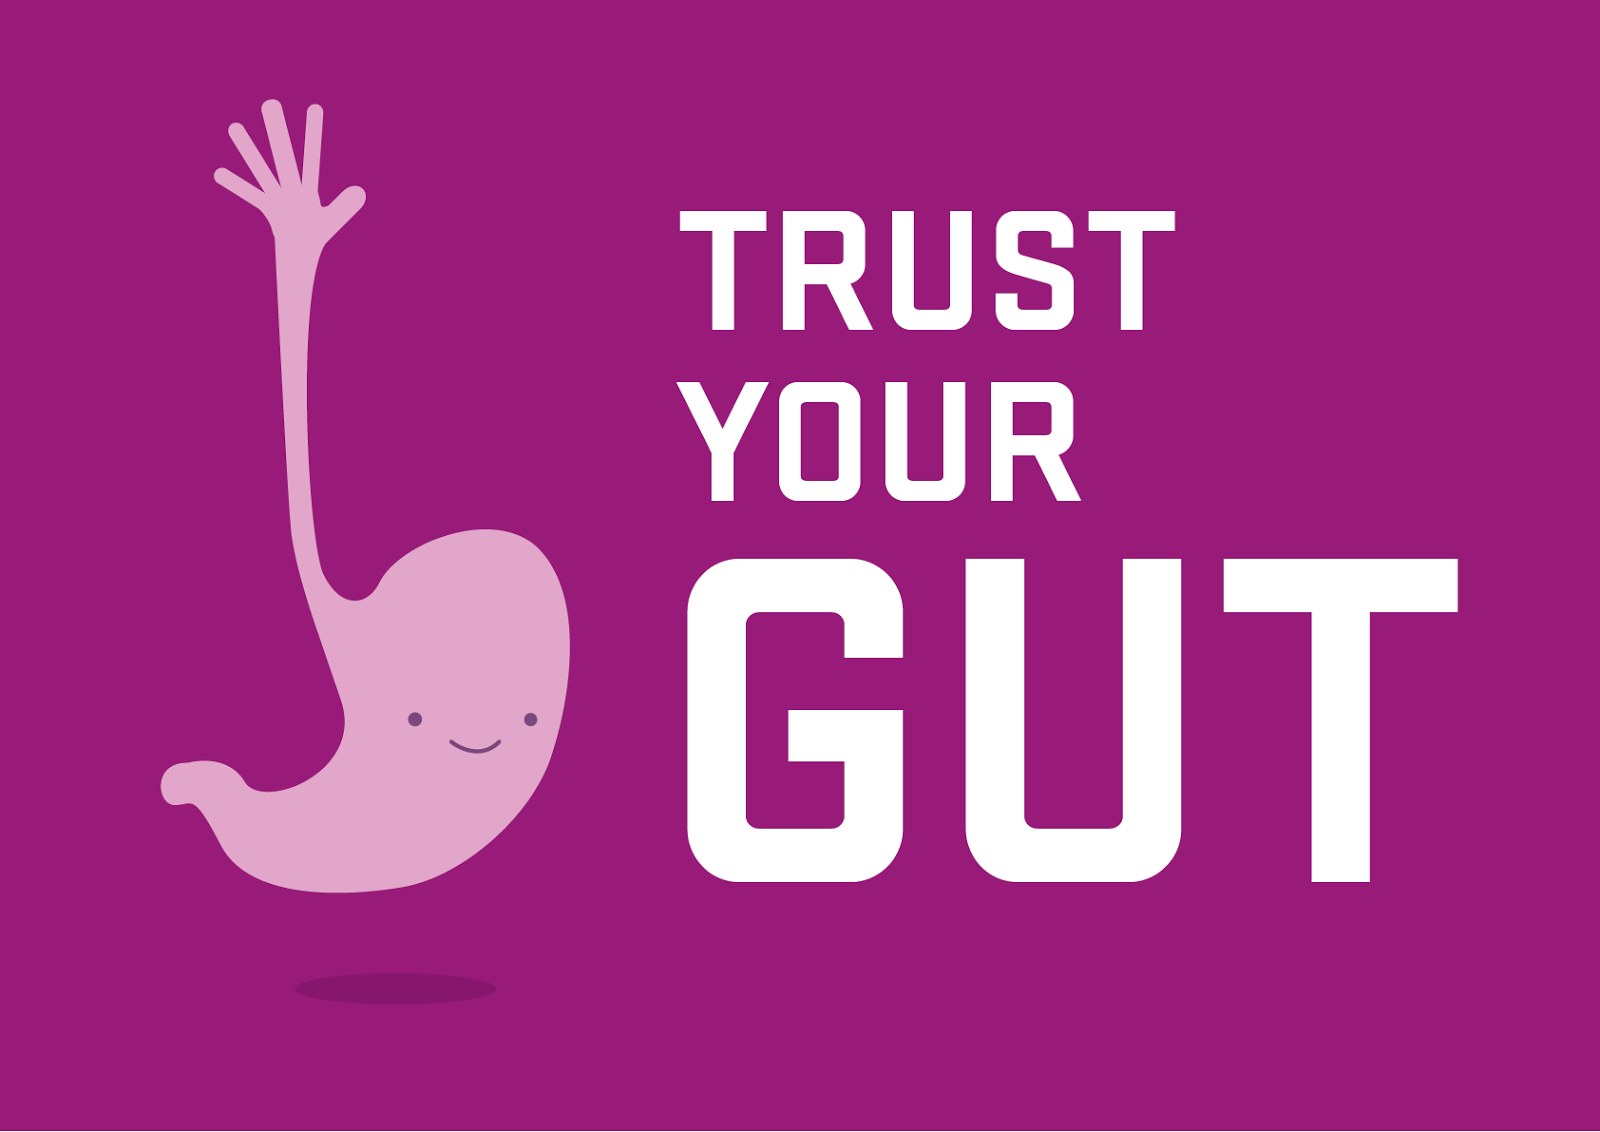 Ayurvedic home remedies: Go with your gut